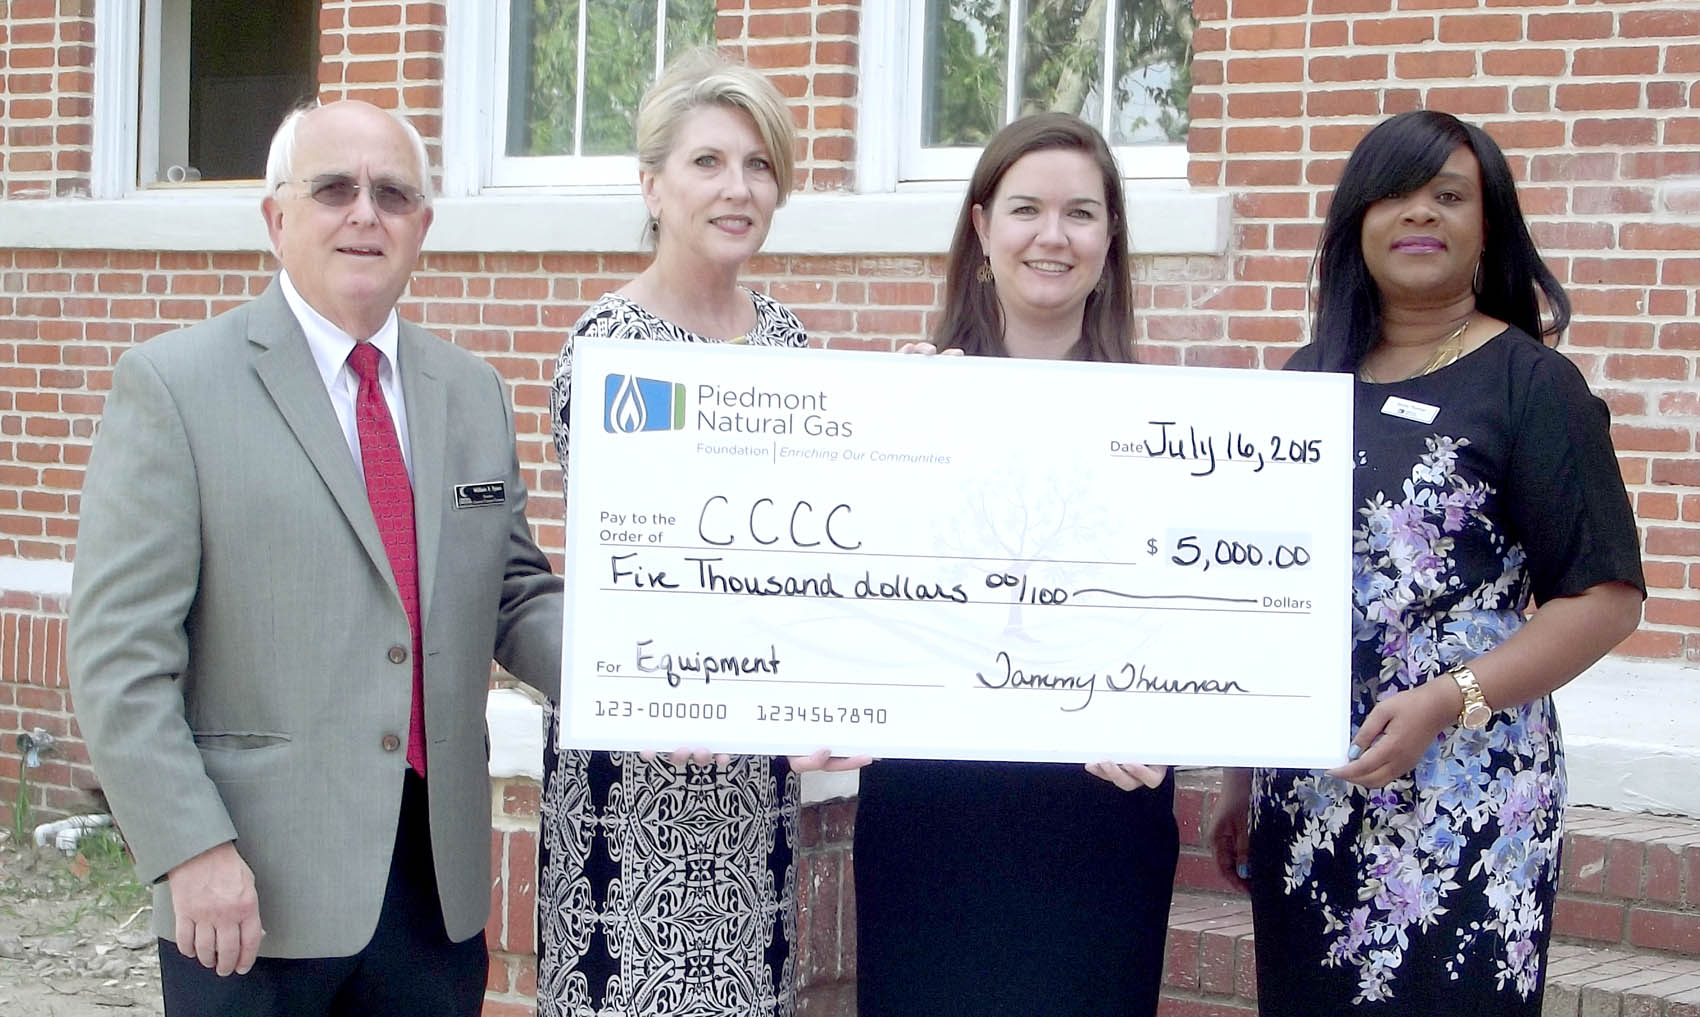 Click to enlarge,  The Piedmont Natural Gas Foundation has made a generous $5,000 donation to help equip the kitchen for the Central Carolina Community College's Culinary Arts program at the new Dunn Center. Pictured are (left to right) Bill Tyson, CCCC's Harnett County Provost; Rebecca Howington, CCCC Dunn Center Site Coordinator; Emily Hare, CCCC Foundation Executive Director; and Tammy Thurman, Piedmont Natural Gas Community Relations Manager (NC-East).